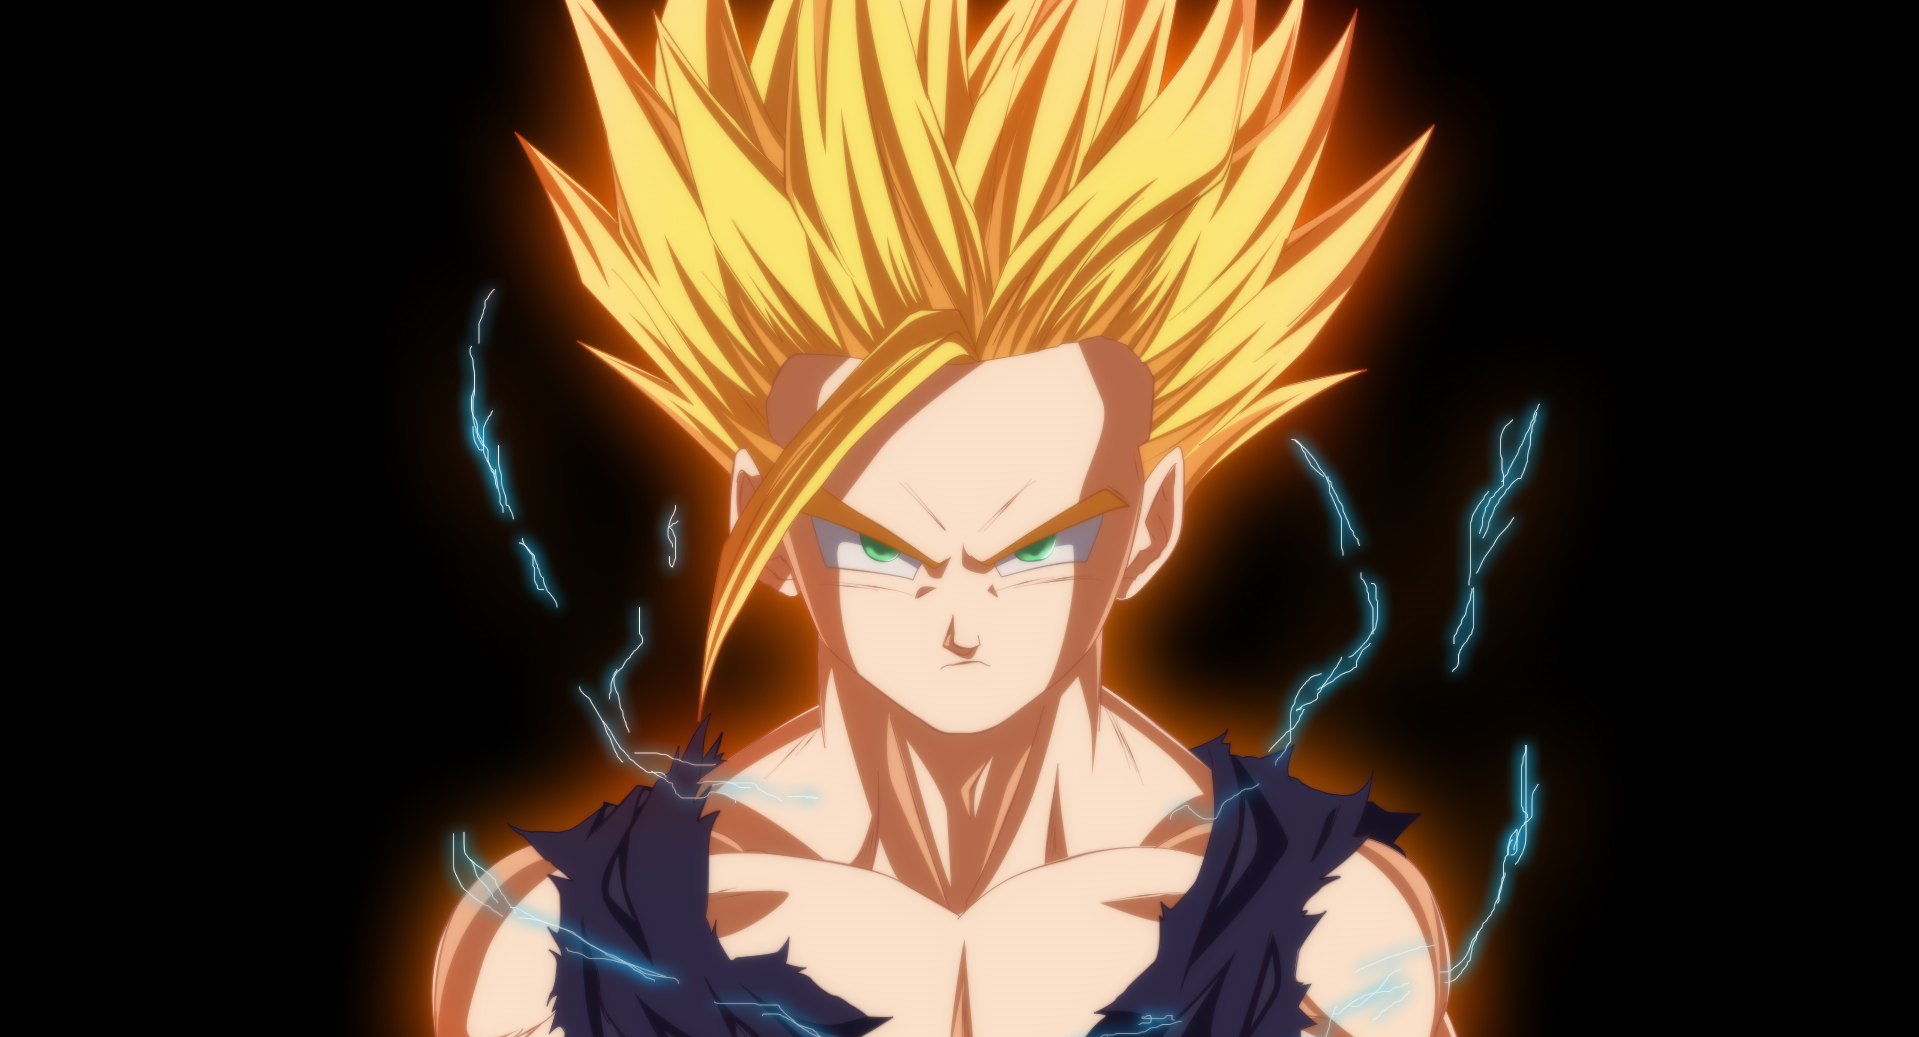 Dragon ball z gohan wallpapers wallpapersafari - Teen gohan wallpaper ...